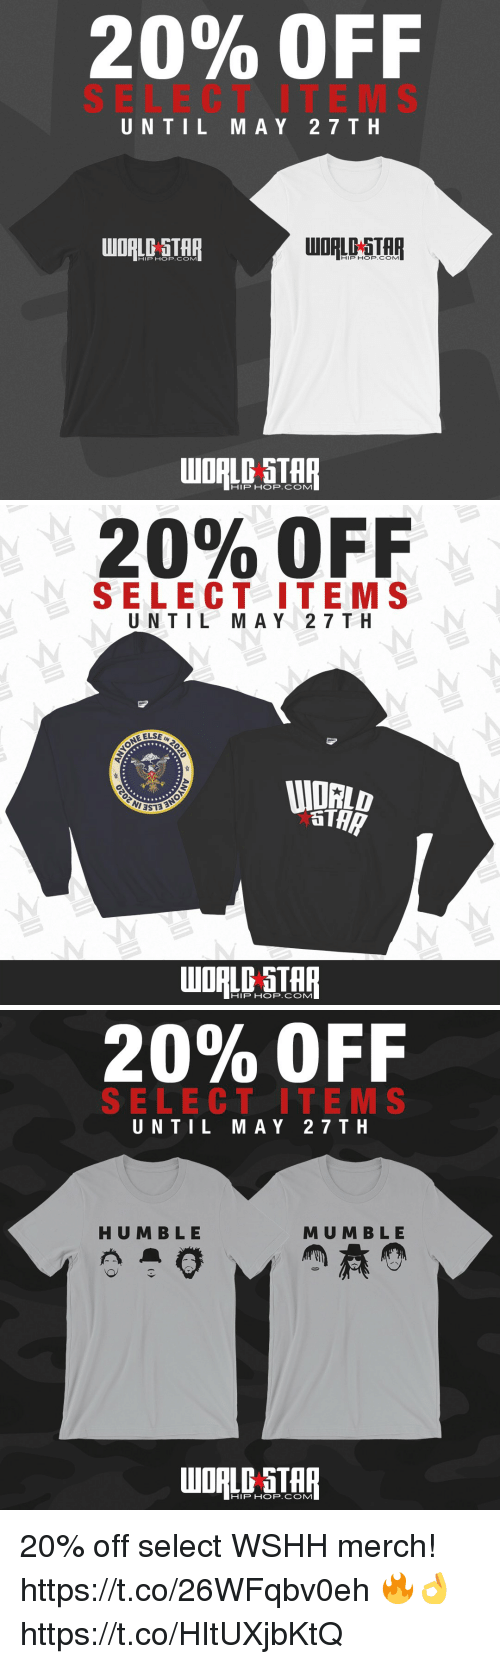 Wshh, Star, and World: 20% OFF  SELECT ITE MS  UNTIL MAY 27 T H  HIP HOP.COM1  HIP HOP.COM   20% OFF  SELECT ITEM S  UNTIL M A Y 2 7TH  EELSE  HIP HOP.COM   20% OFF  SELECT ITE M S  UNTIL MAY 27TH  HUM BLE  MU M B LE  WORLD STAR  HIP HOP.COMM 20% off select WSHH merch! https://t.co/26WFqbv0eh 🔥👌 https://t.co/HItUXjbKtQ